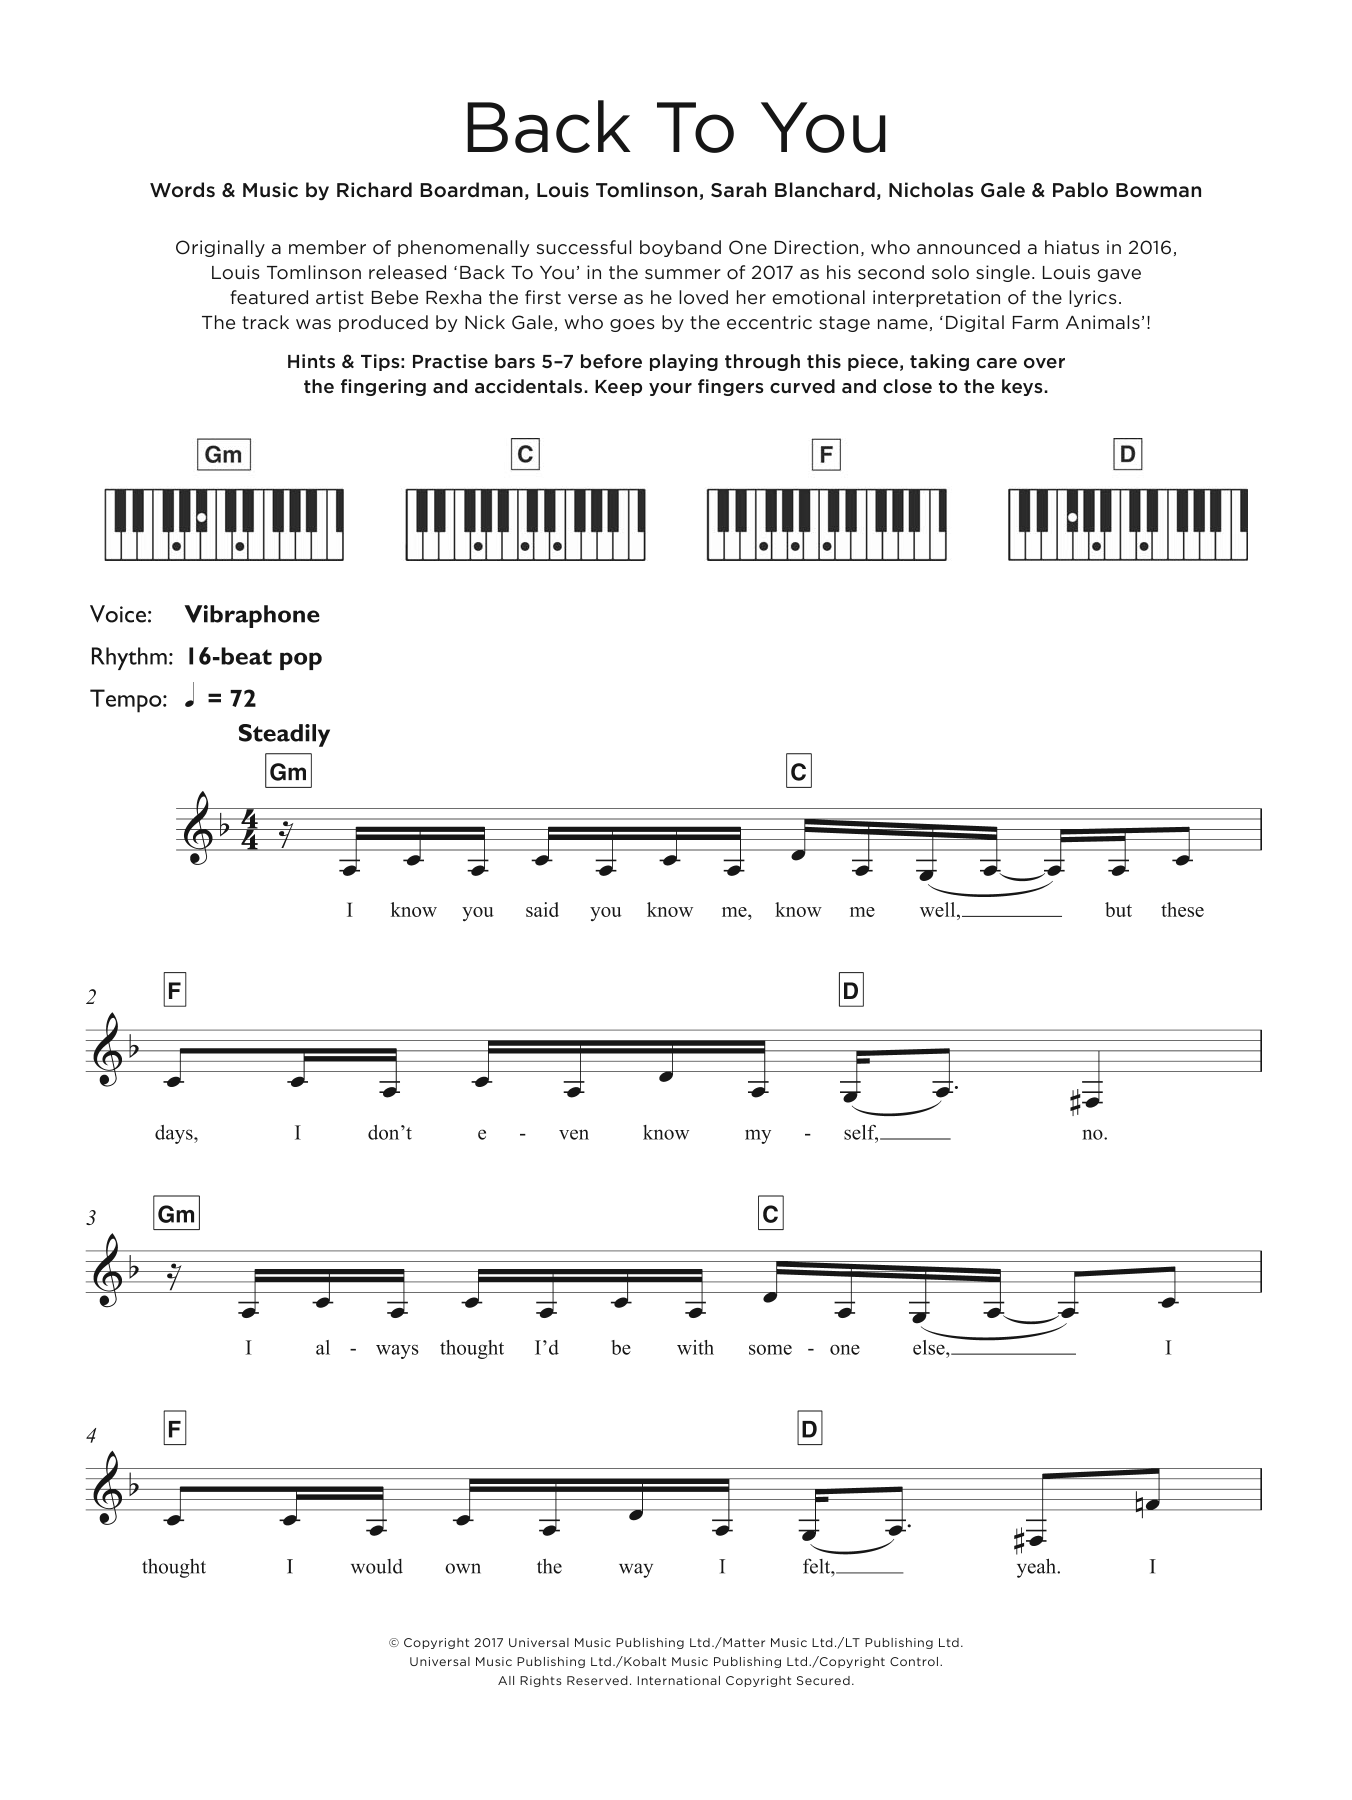 Back To You (featuring Bebe Rexha and Digital Farm Animals) Sheet Music